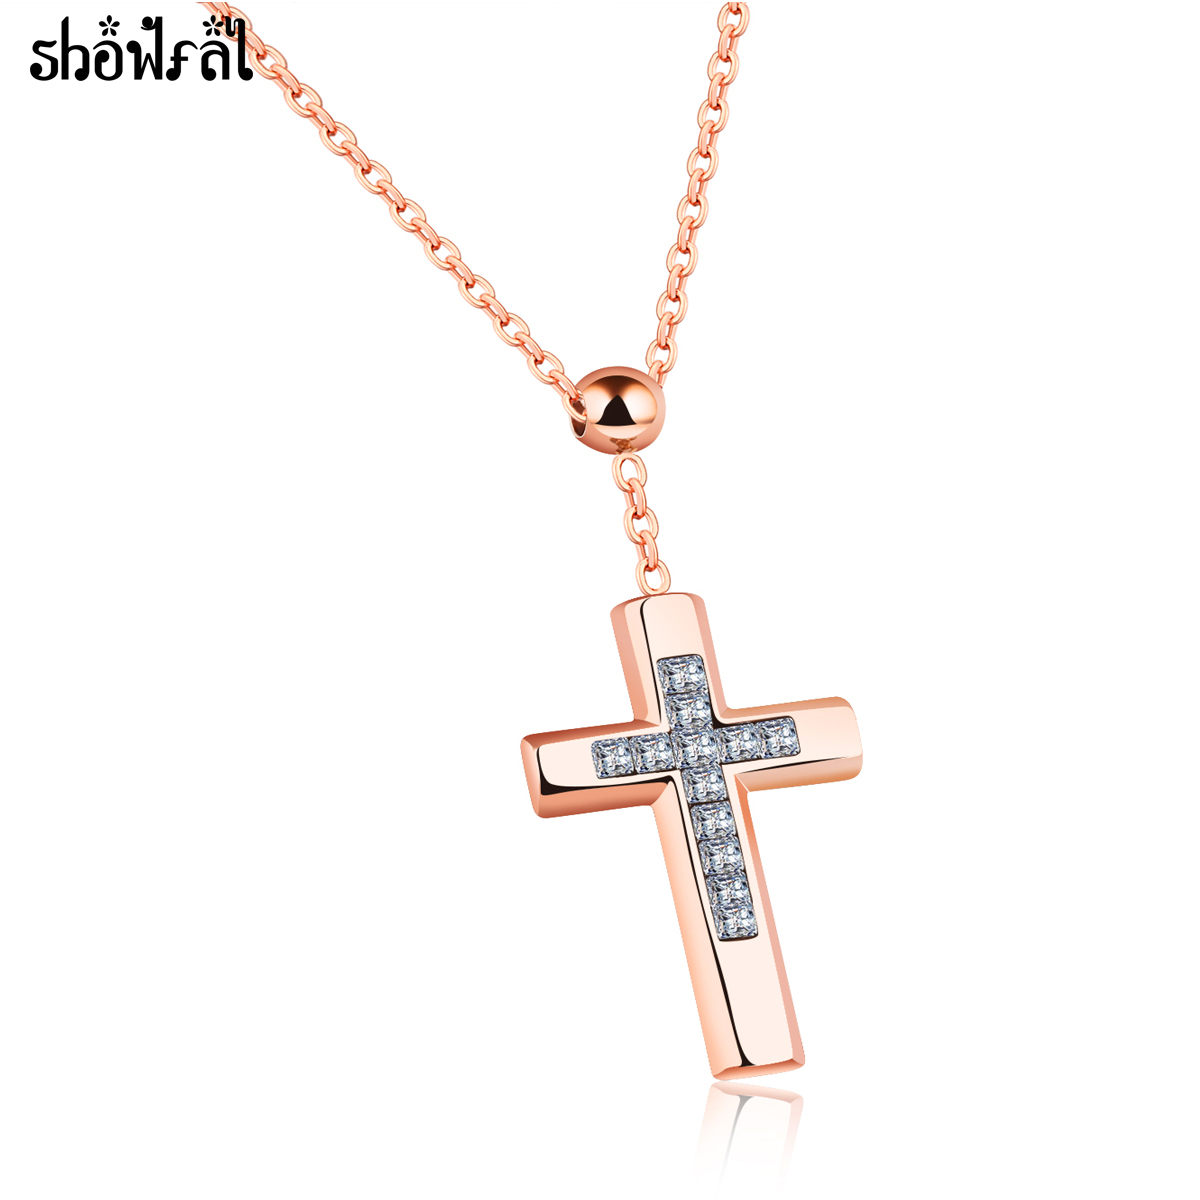 showfay fashion bulgarian zircon cross necklaces pendants. Black Bedroom Furniture Sets. Home Design Ideas